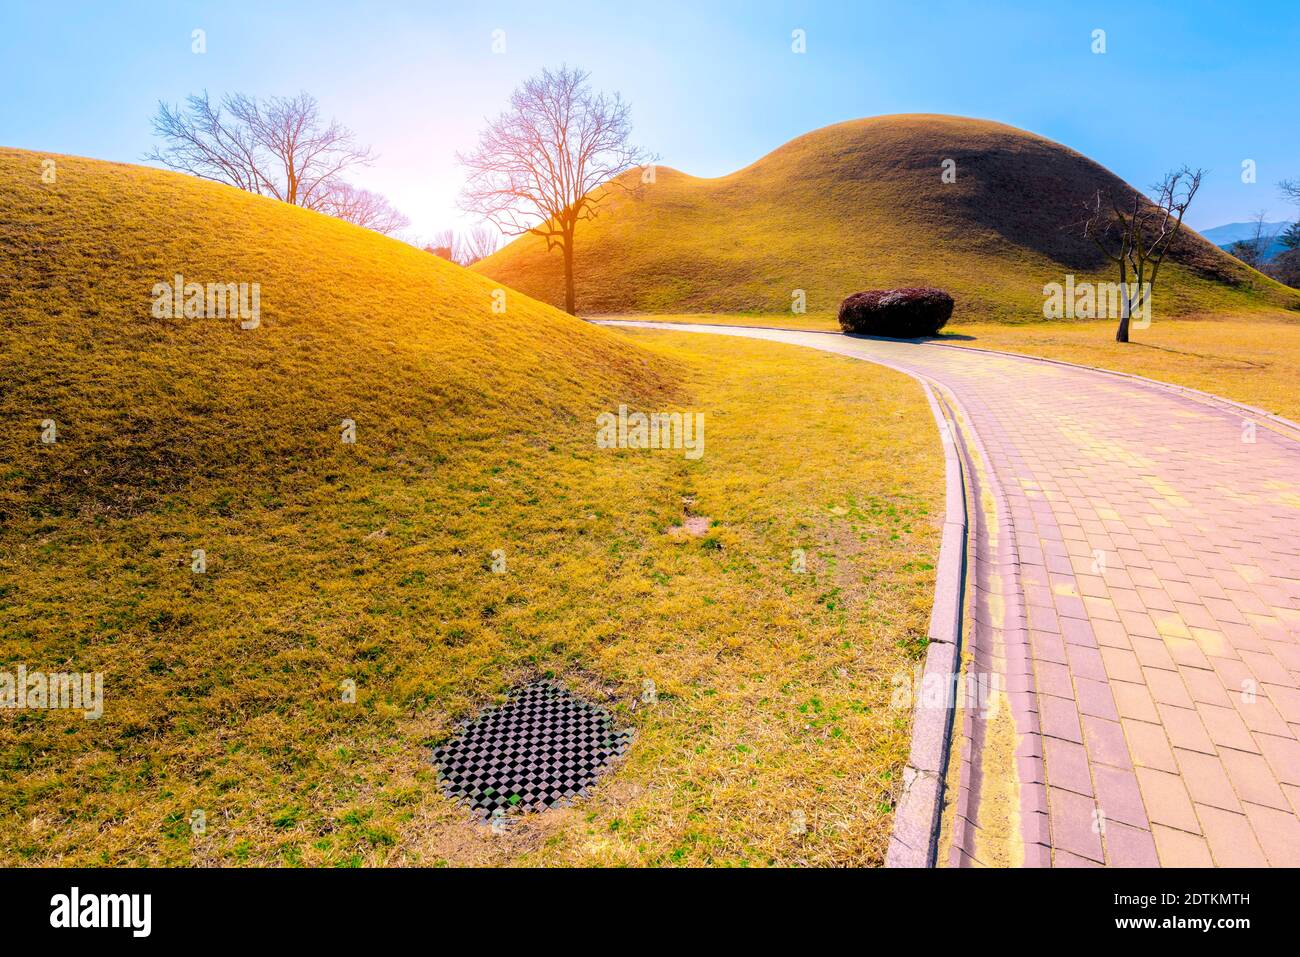 The Royal Tombs of Shila,Tumuli in Kyeongju,South Korea Stock Photo